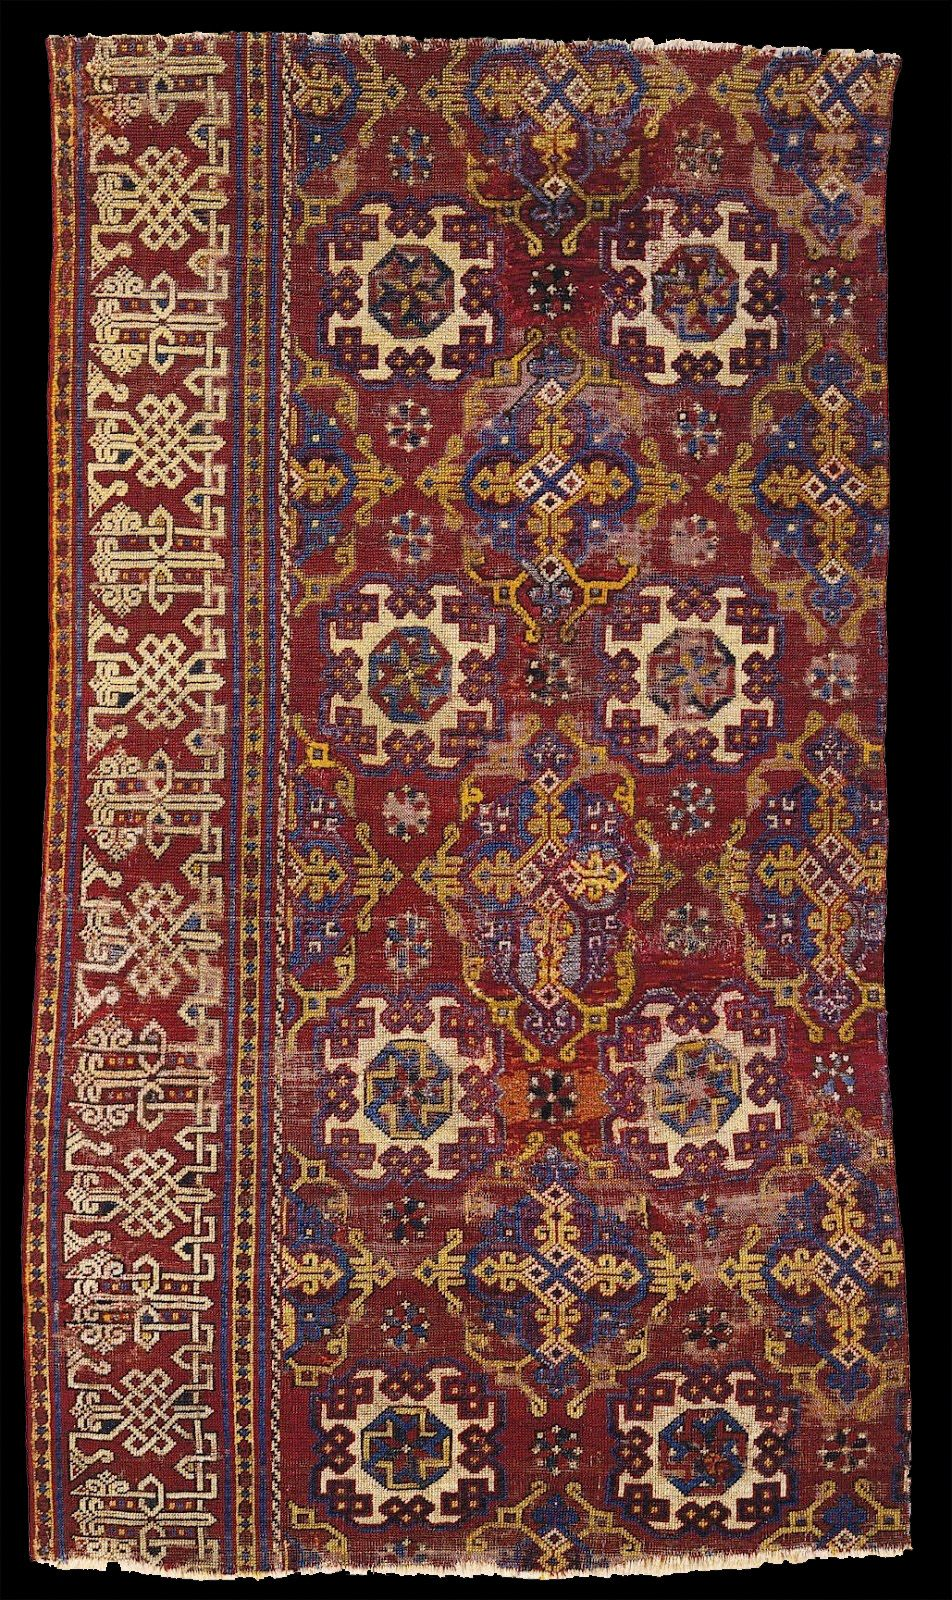 East Berlin Museum Holbein carpet  Small pattern Holbein carpet, XV-XVI centuries, Ottoman Empire, Western Turkey. East Berlin Museum. inv. nr. I 6737. formerly in the Municipal Collection, Düsseldorf.